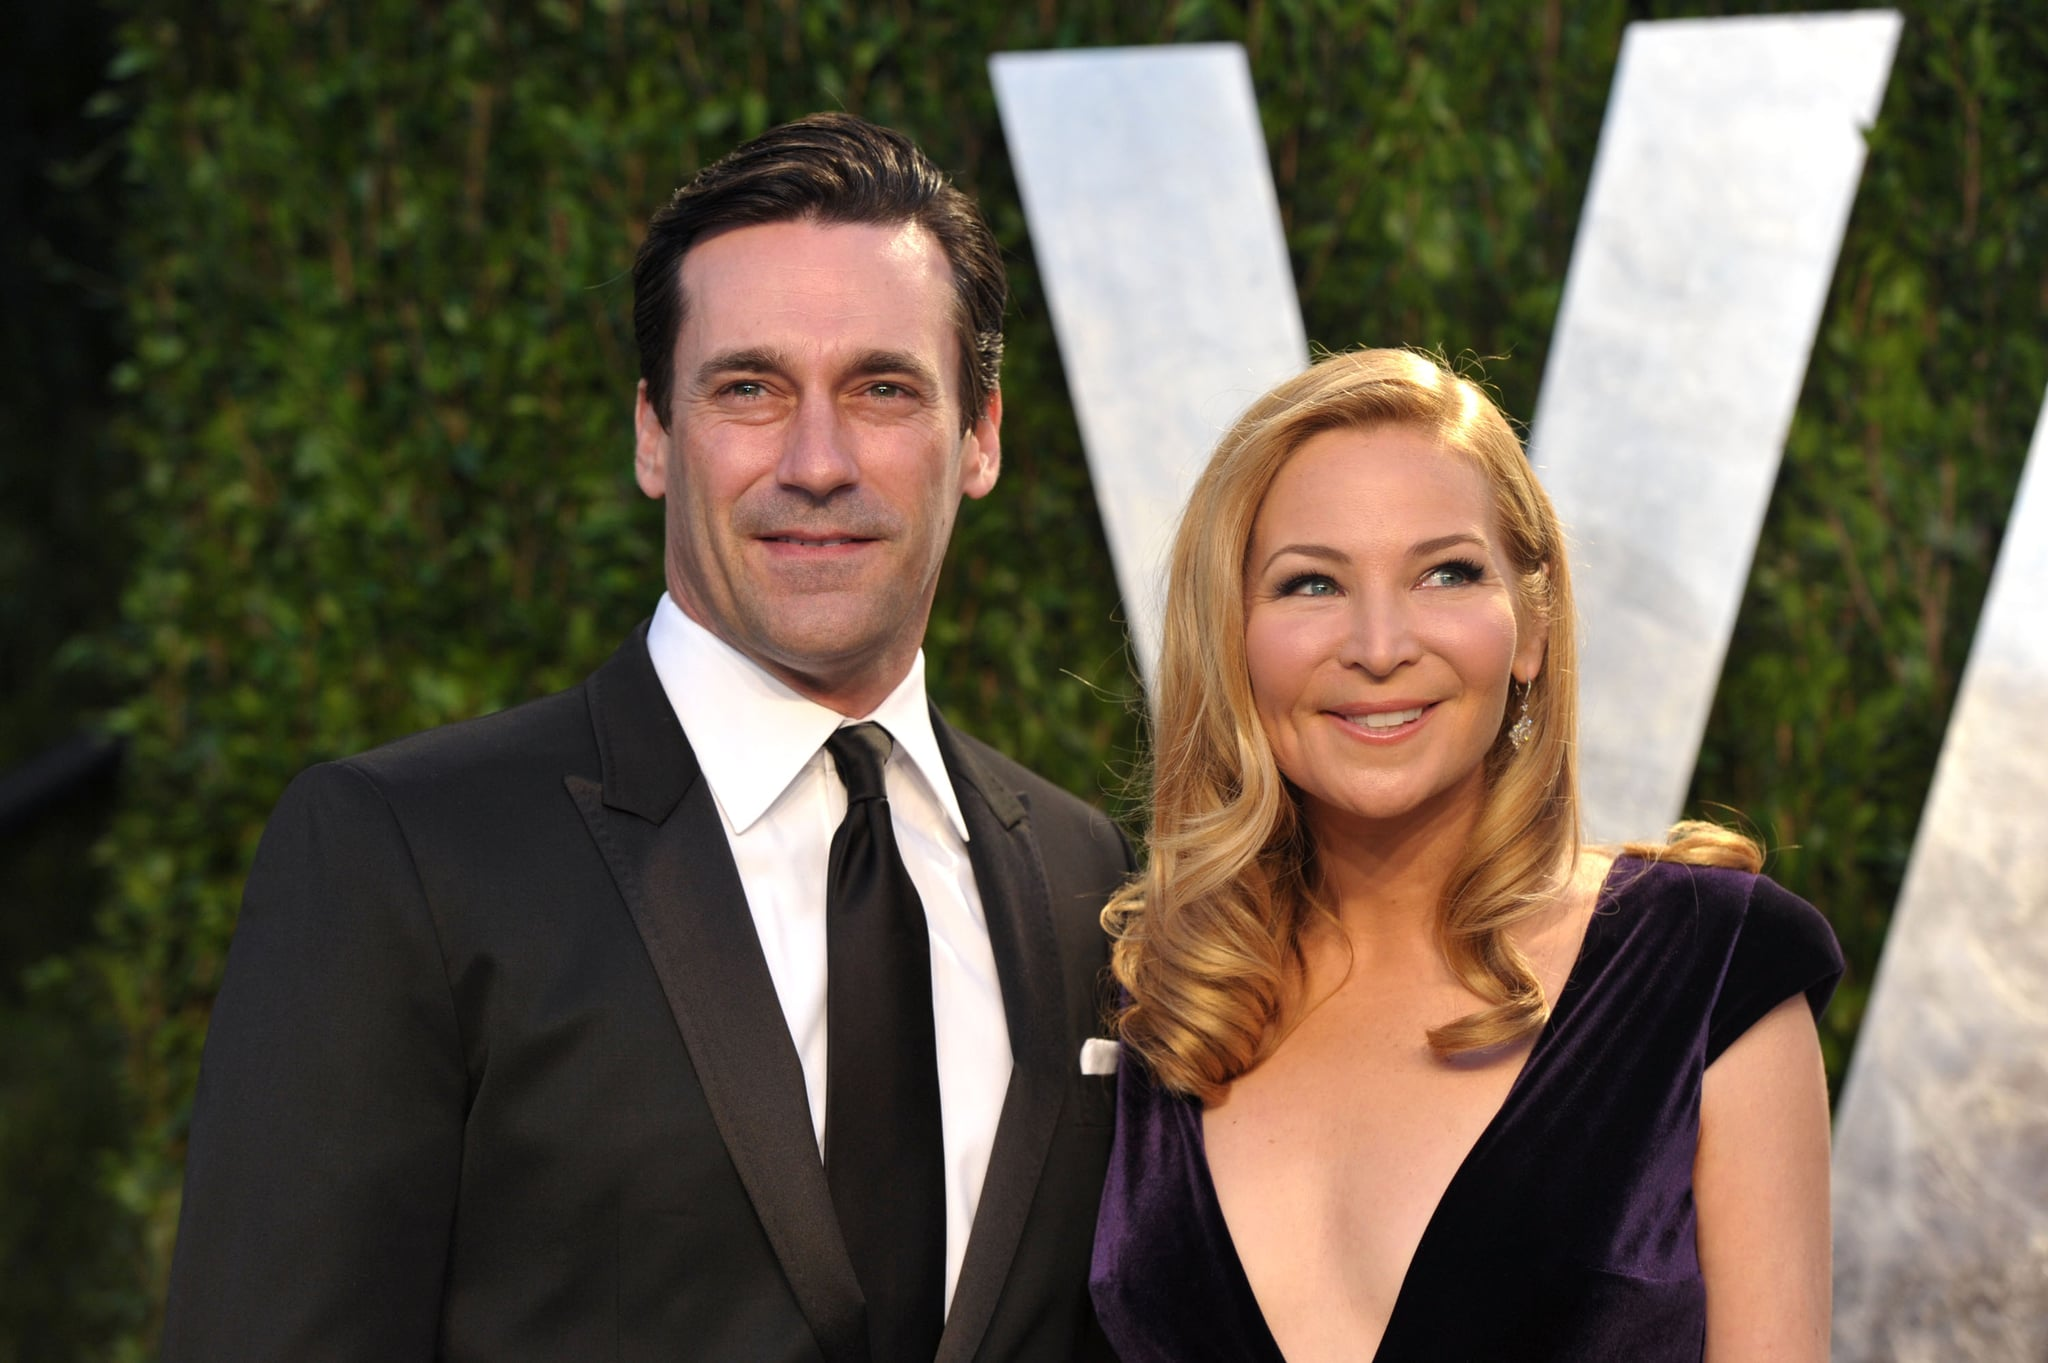 John Hamm and Jennifer Westfeldt up close at the Oscars afterparty.